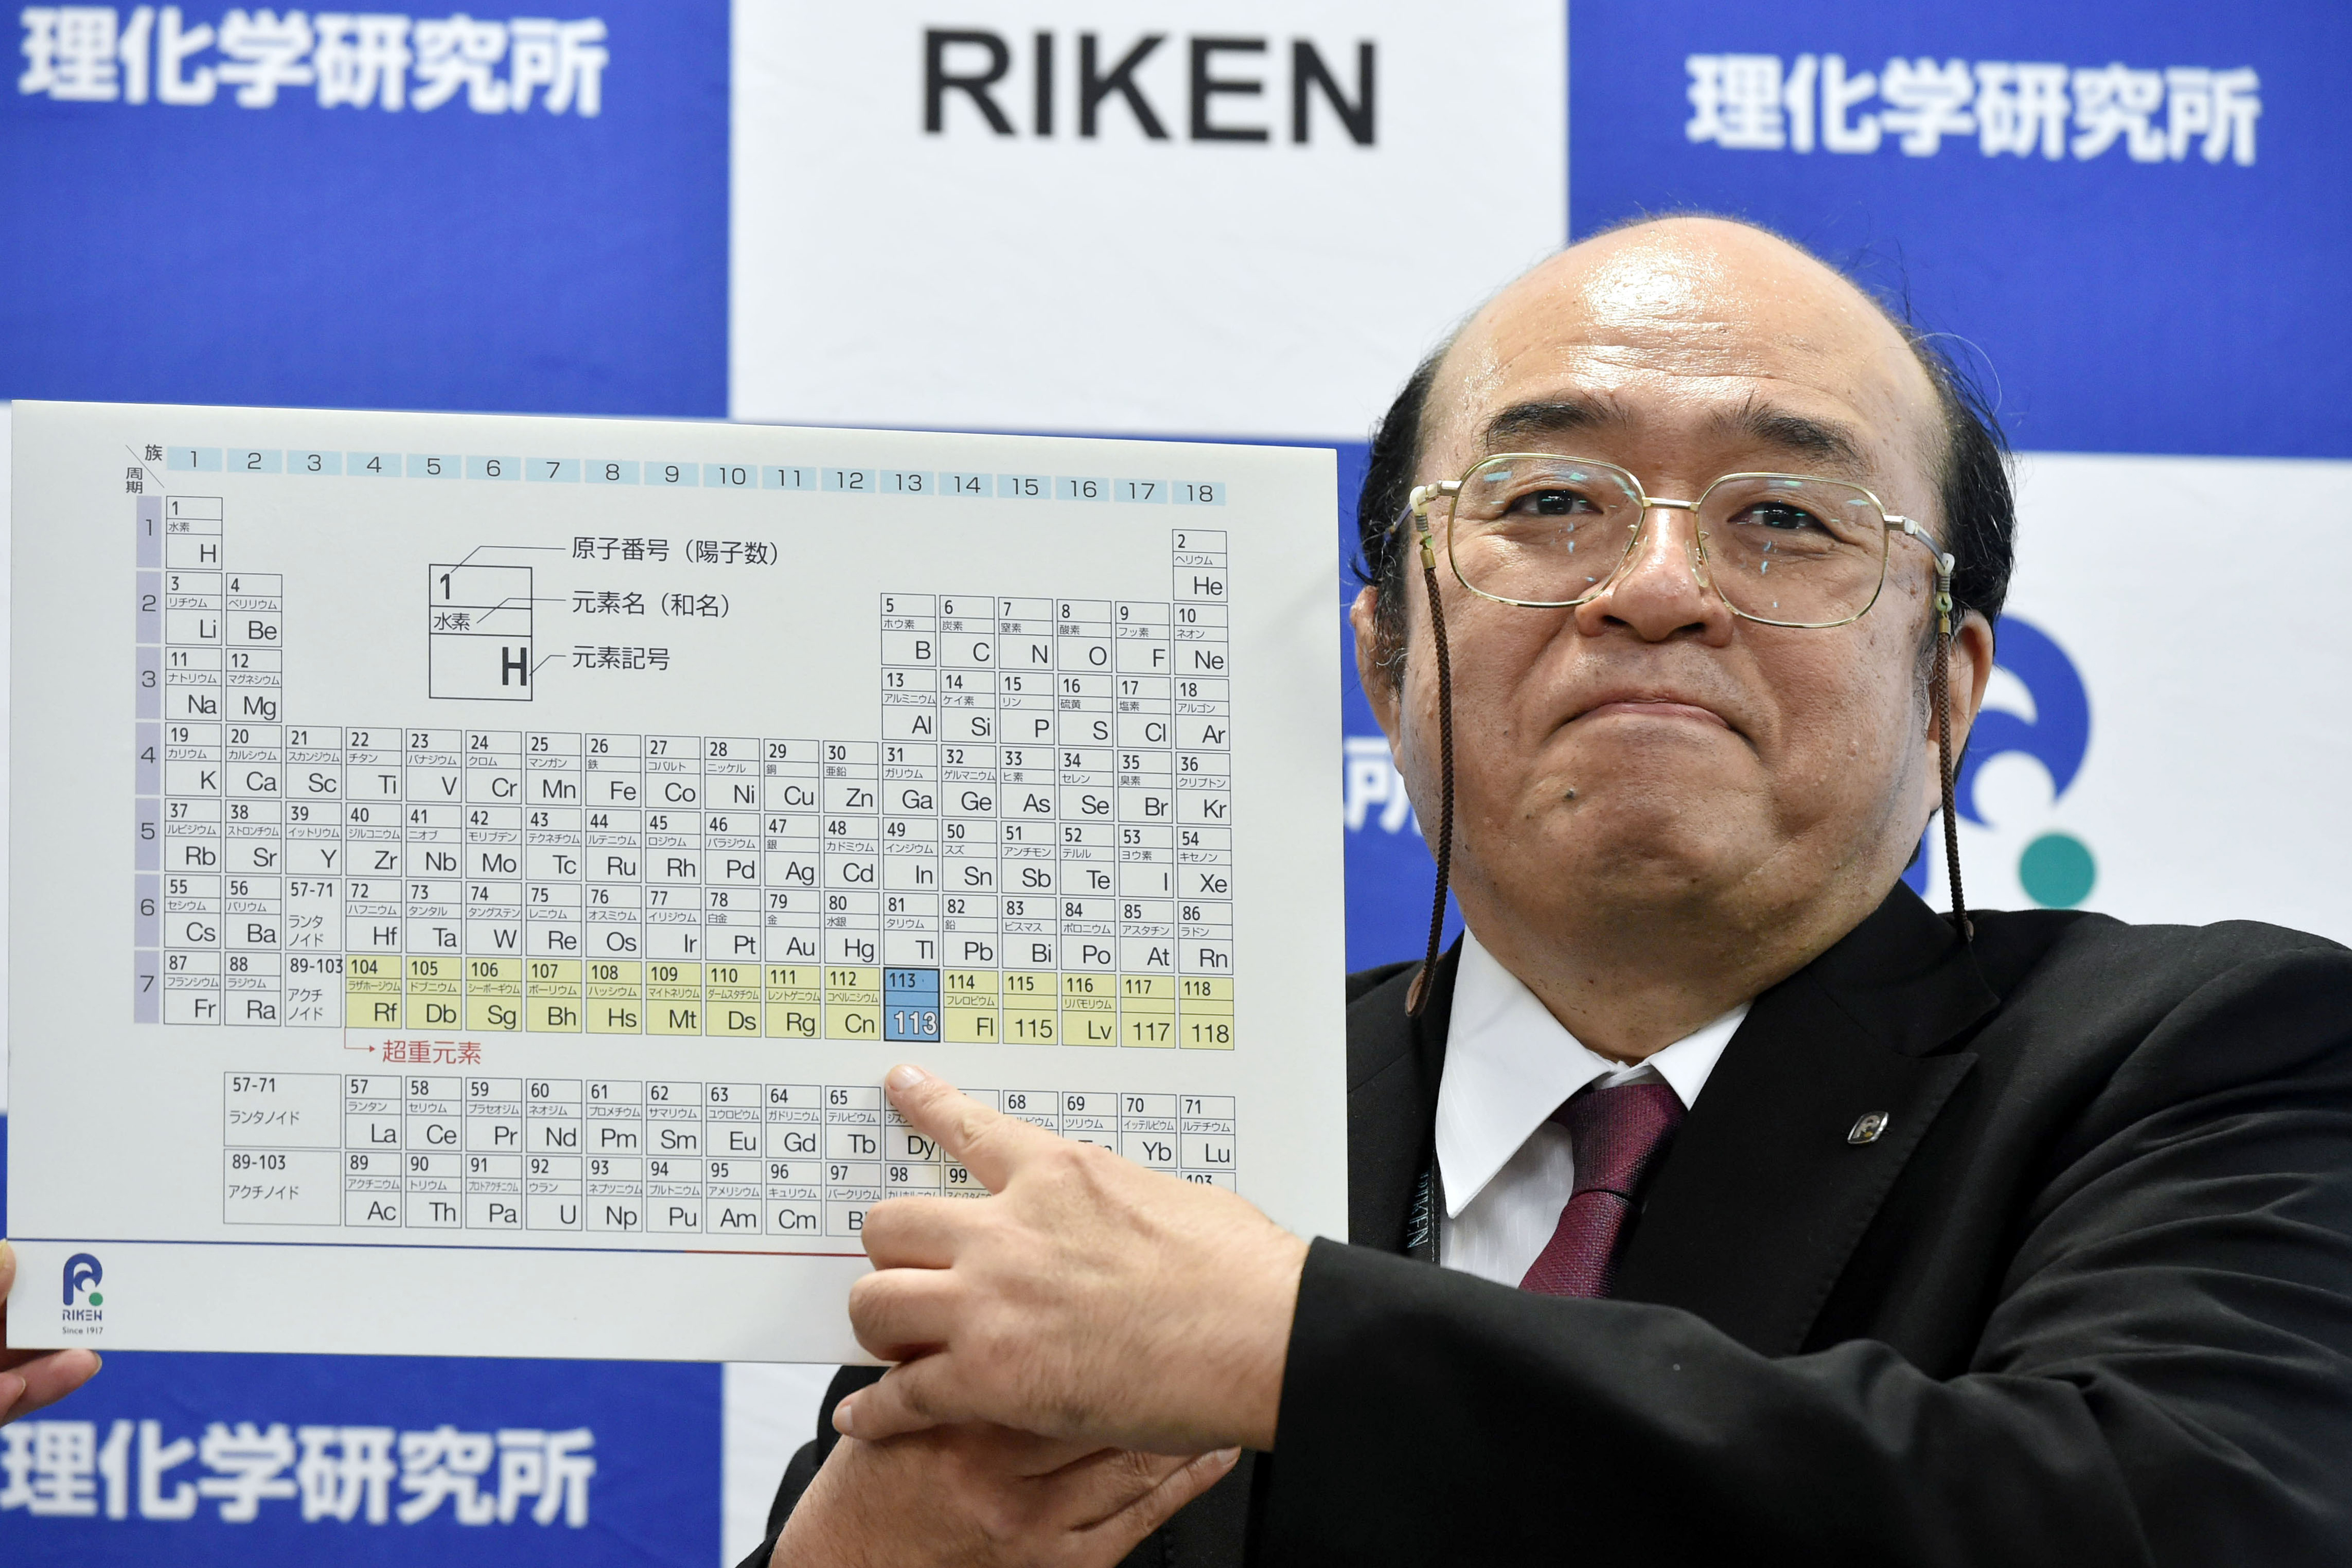 Kosuke Morita,  who has led the RIKEN group at the Riken institute, shows the 113th atomic element at a news conference in Wako, Saitama Prefecture on Dec. 31, 2015.